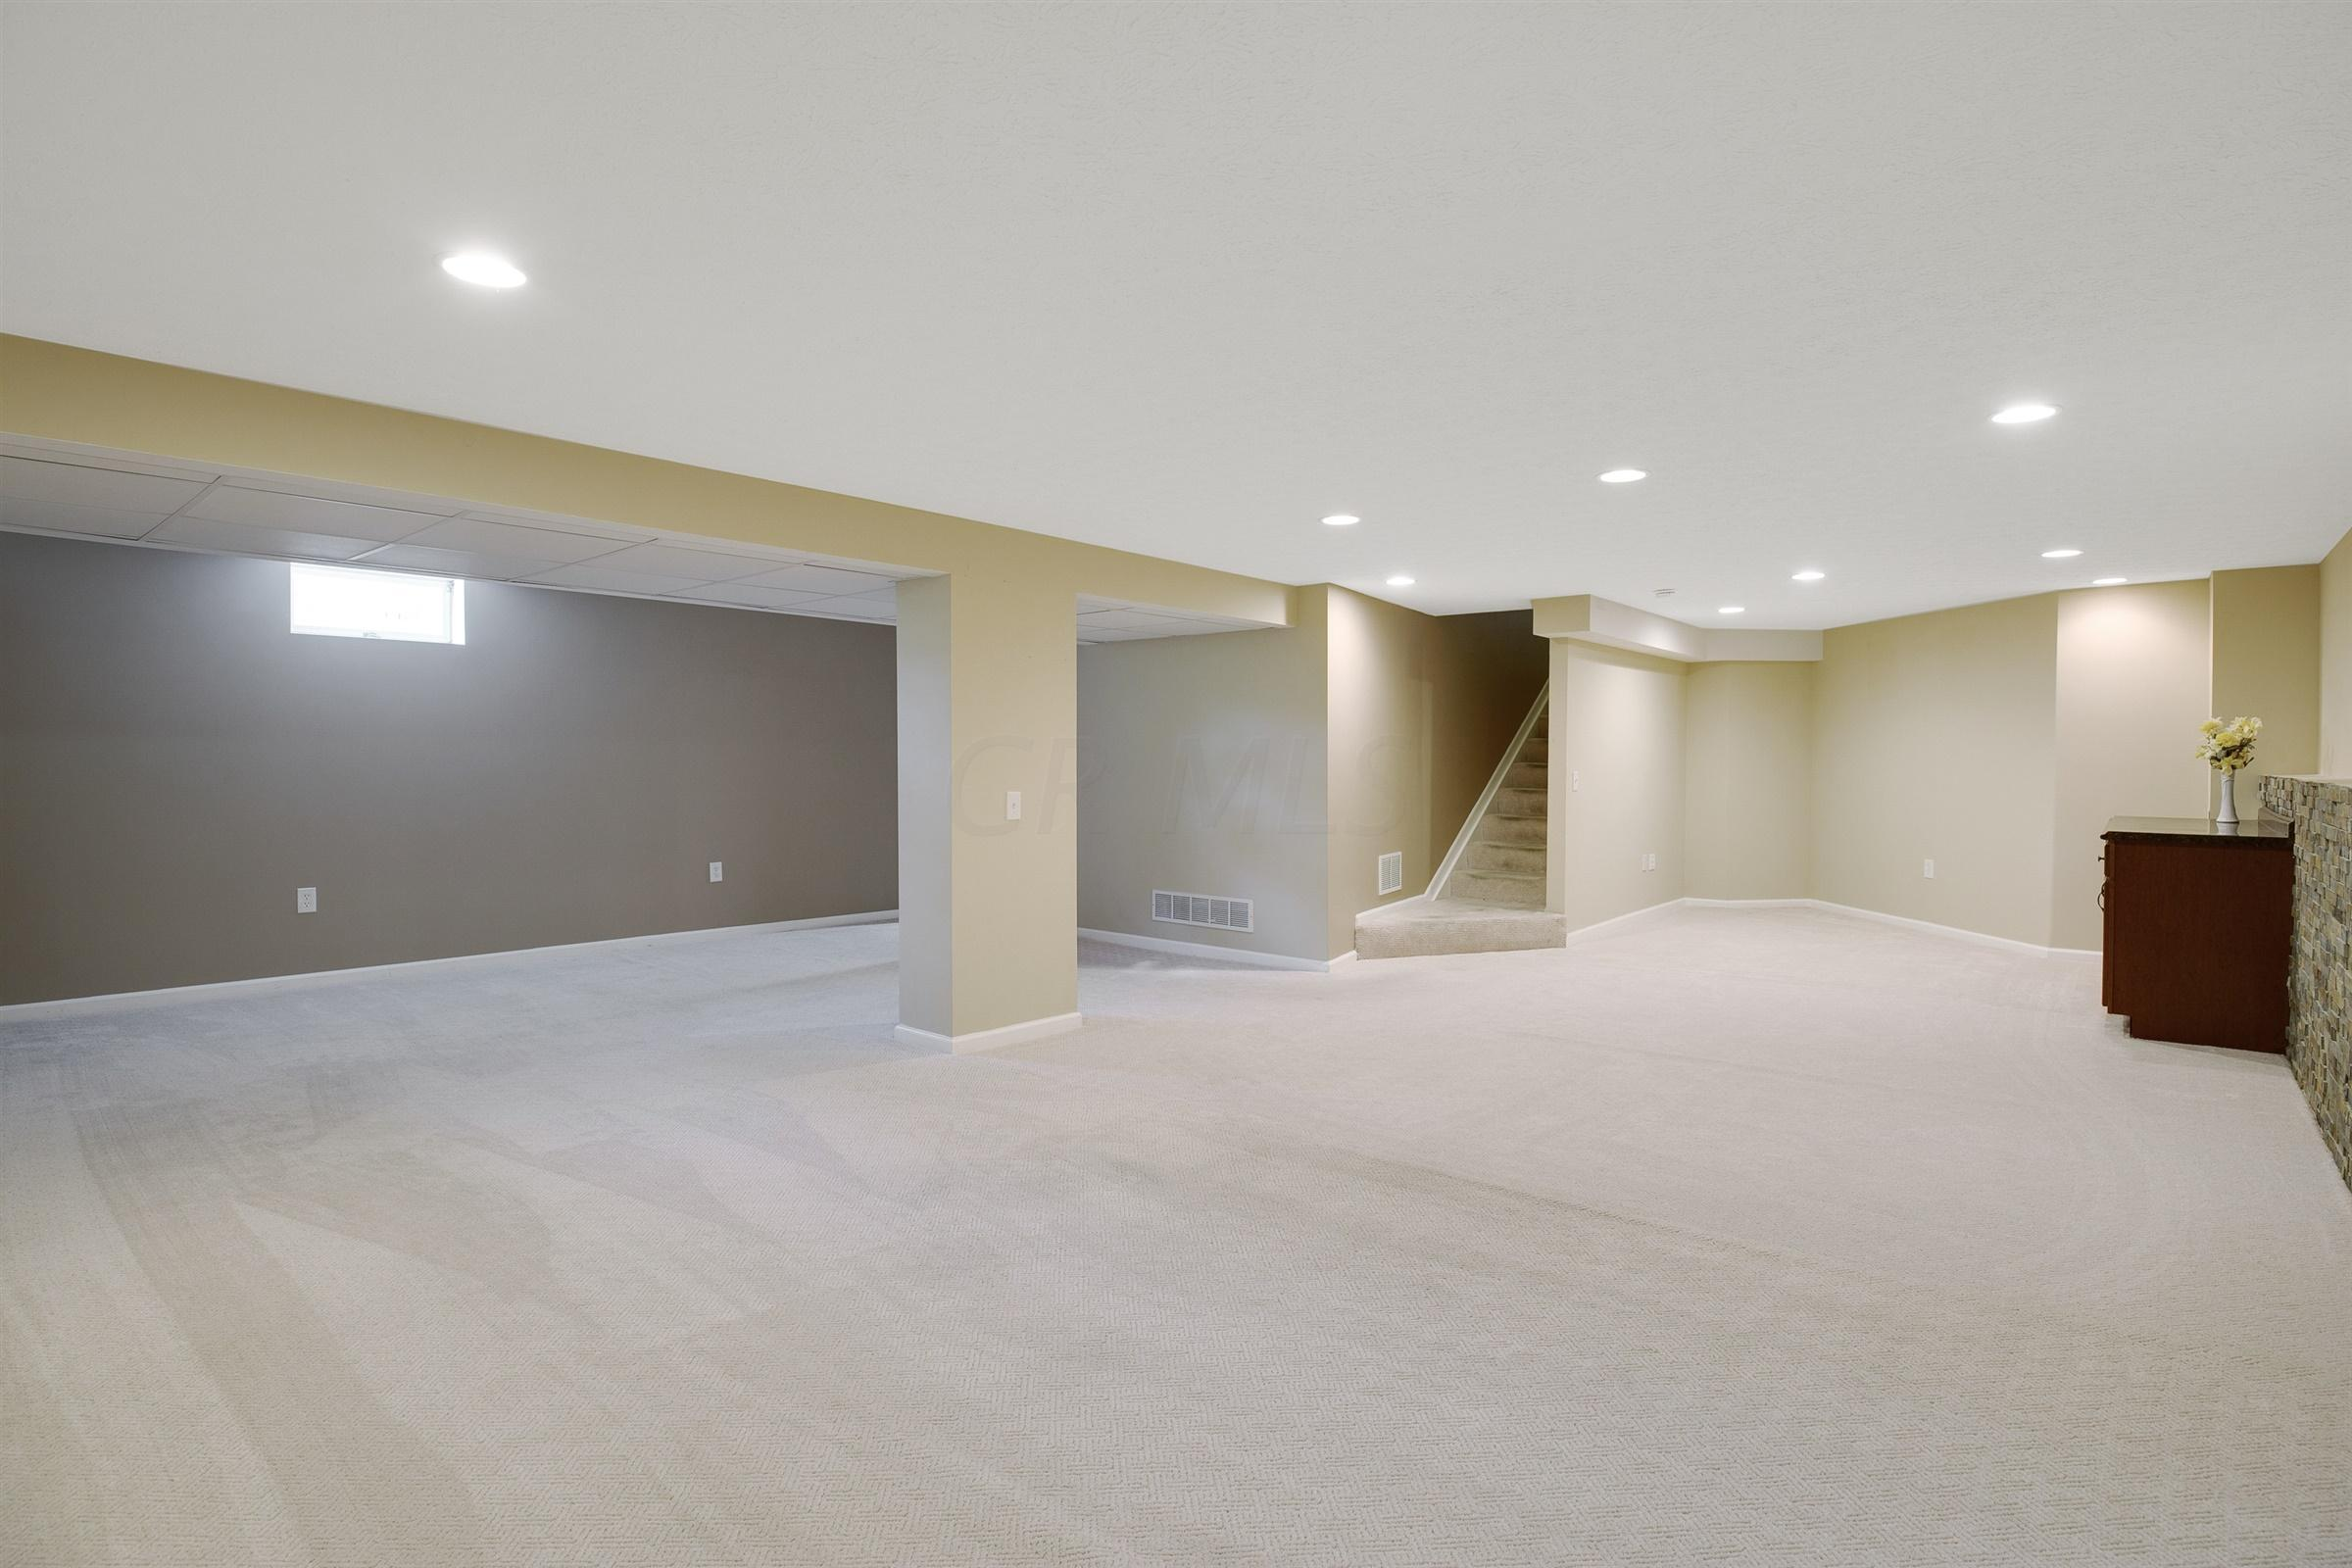 8315 Coldharbor Boulevard, Lewis Center, Ohio 43035, 3 Bedrooms Bedrooms, ,3 BathroomsBathrooms,Residential,For Sale,Coldharbor,220020999